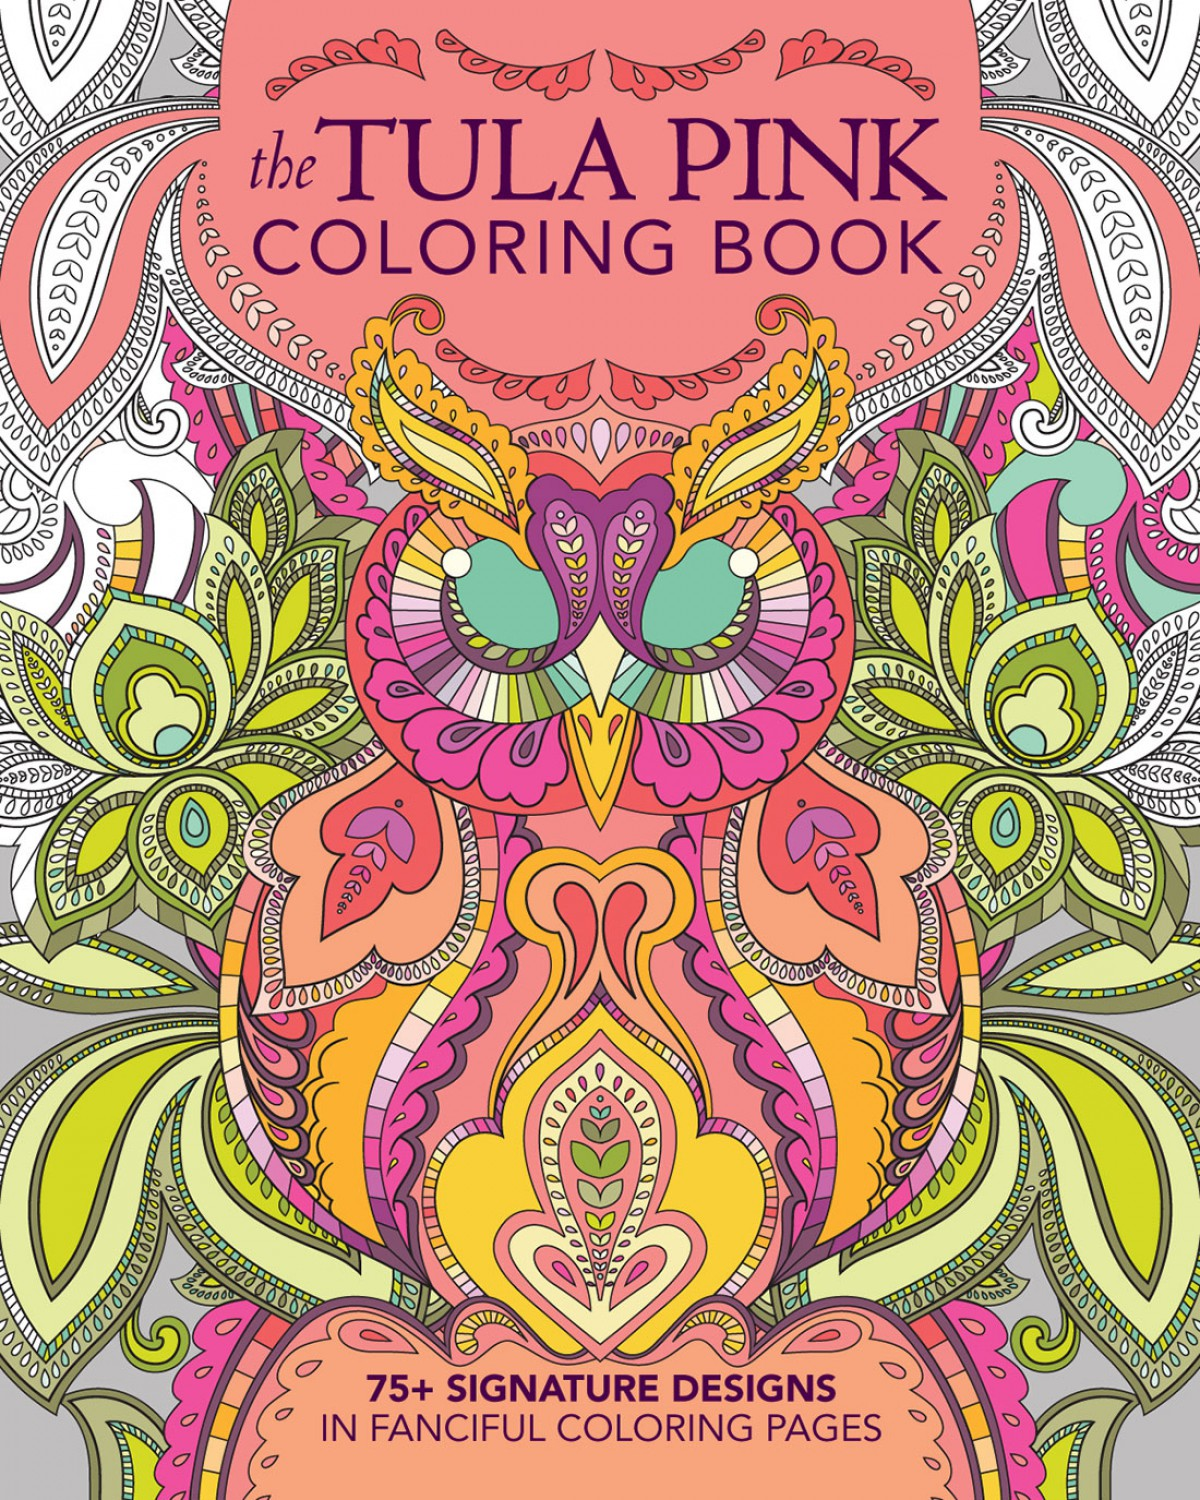 c73cbc54584 Tula Pink Coloring Book - Softcover S0476  15.95  each